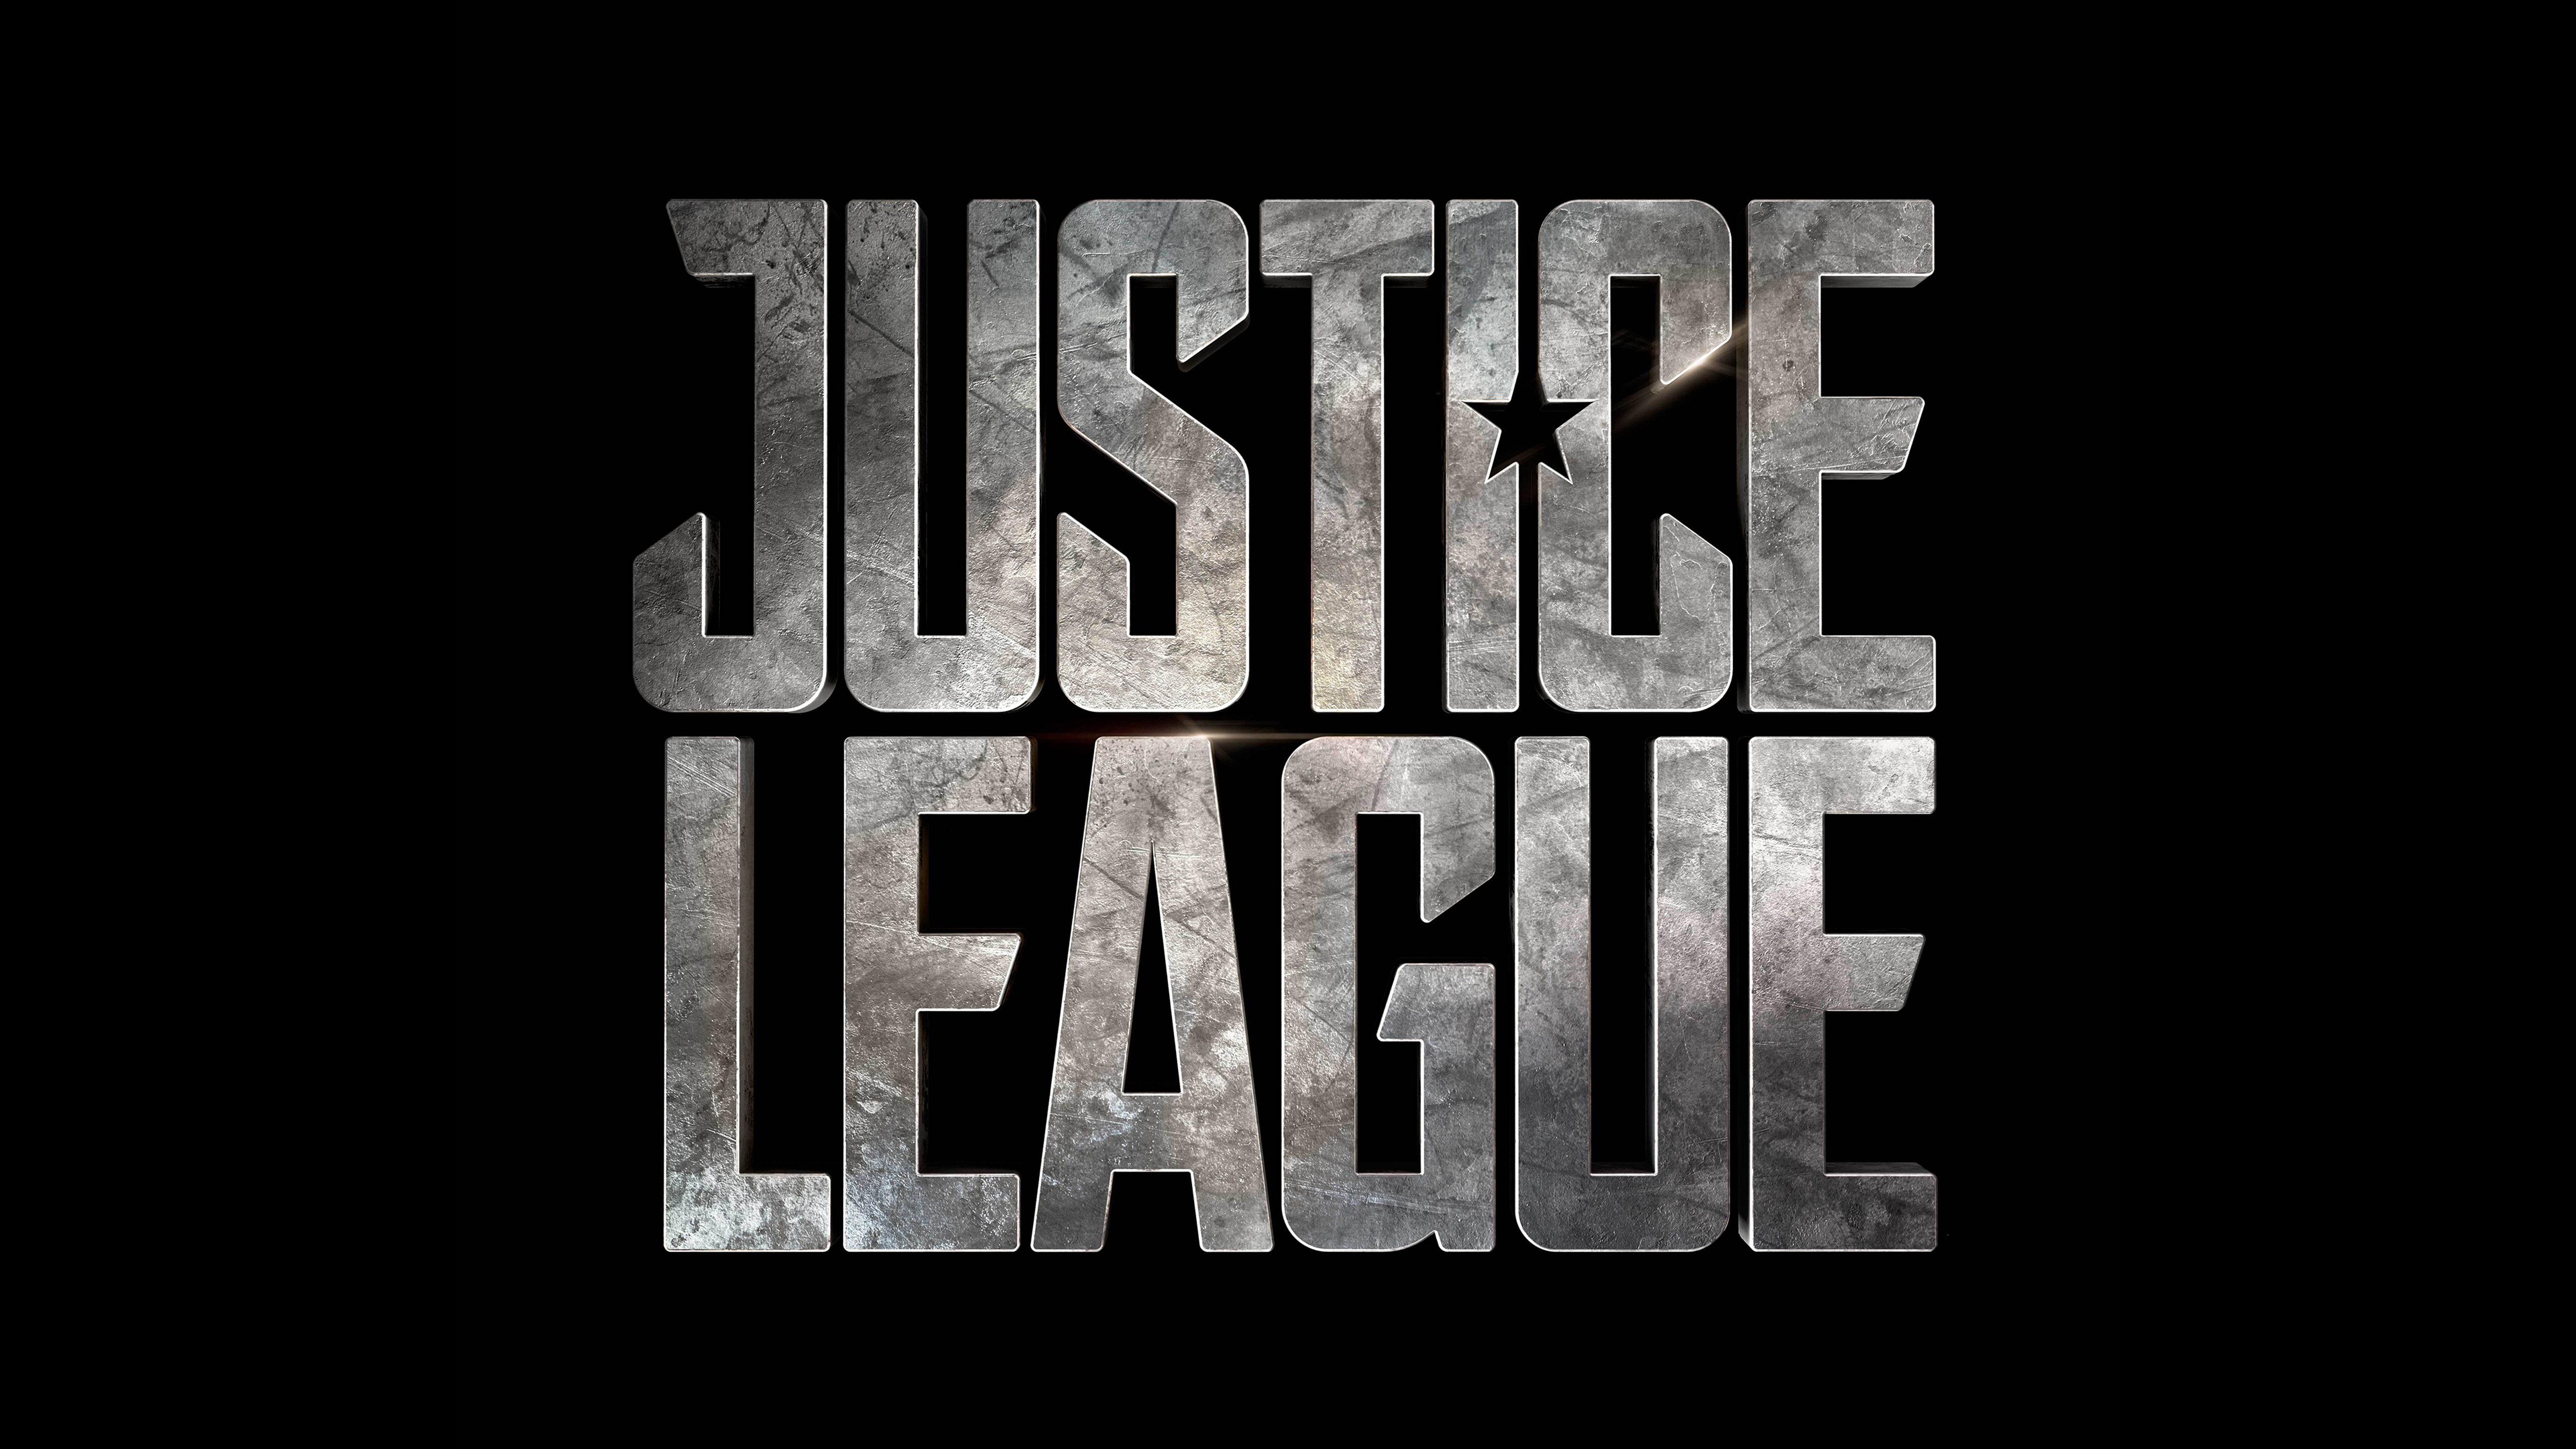 Justice League Movie Hd Movies 4k Wallpapers Images: Justice League 5k Logo, HD Movies, 4k Wallpapers, Images